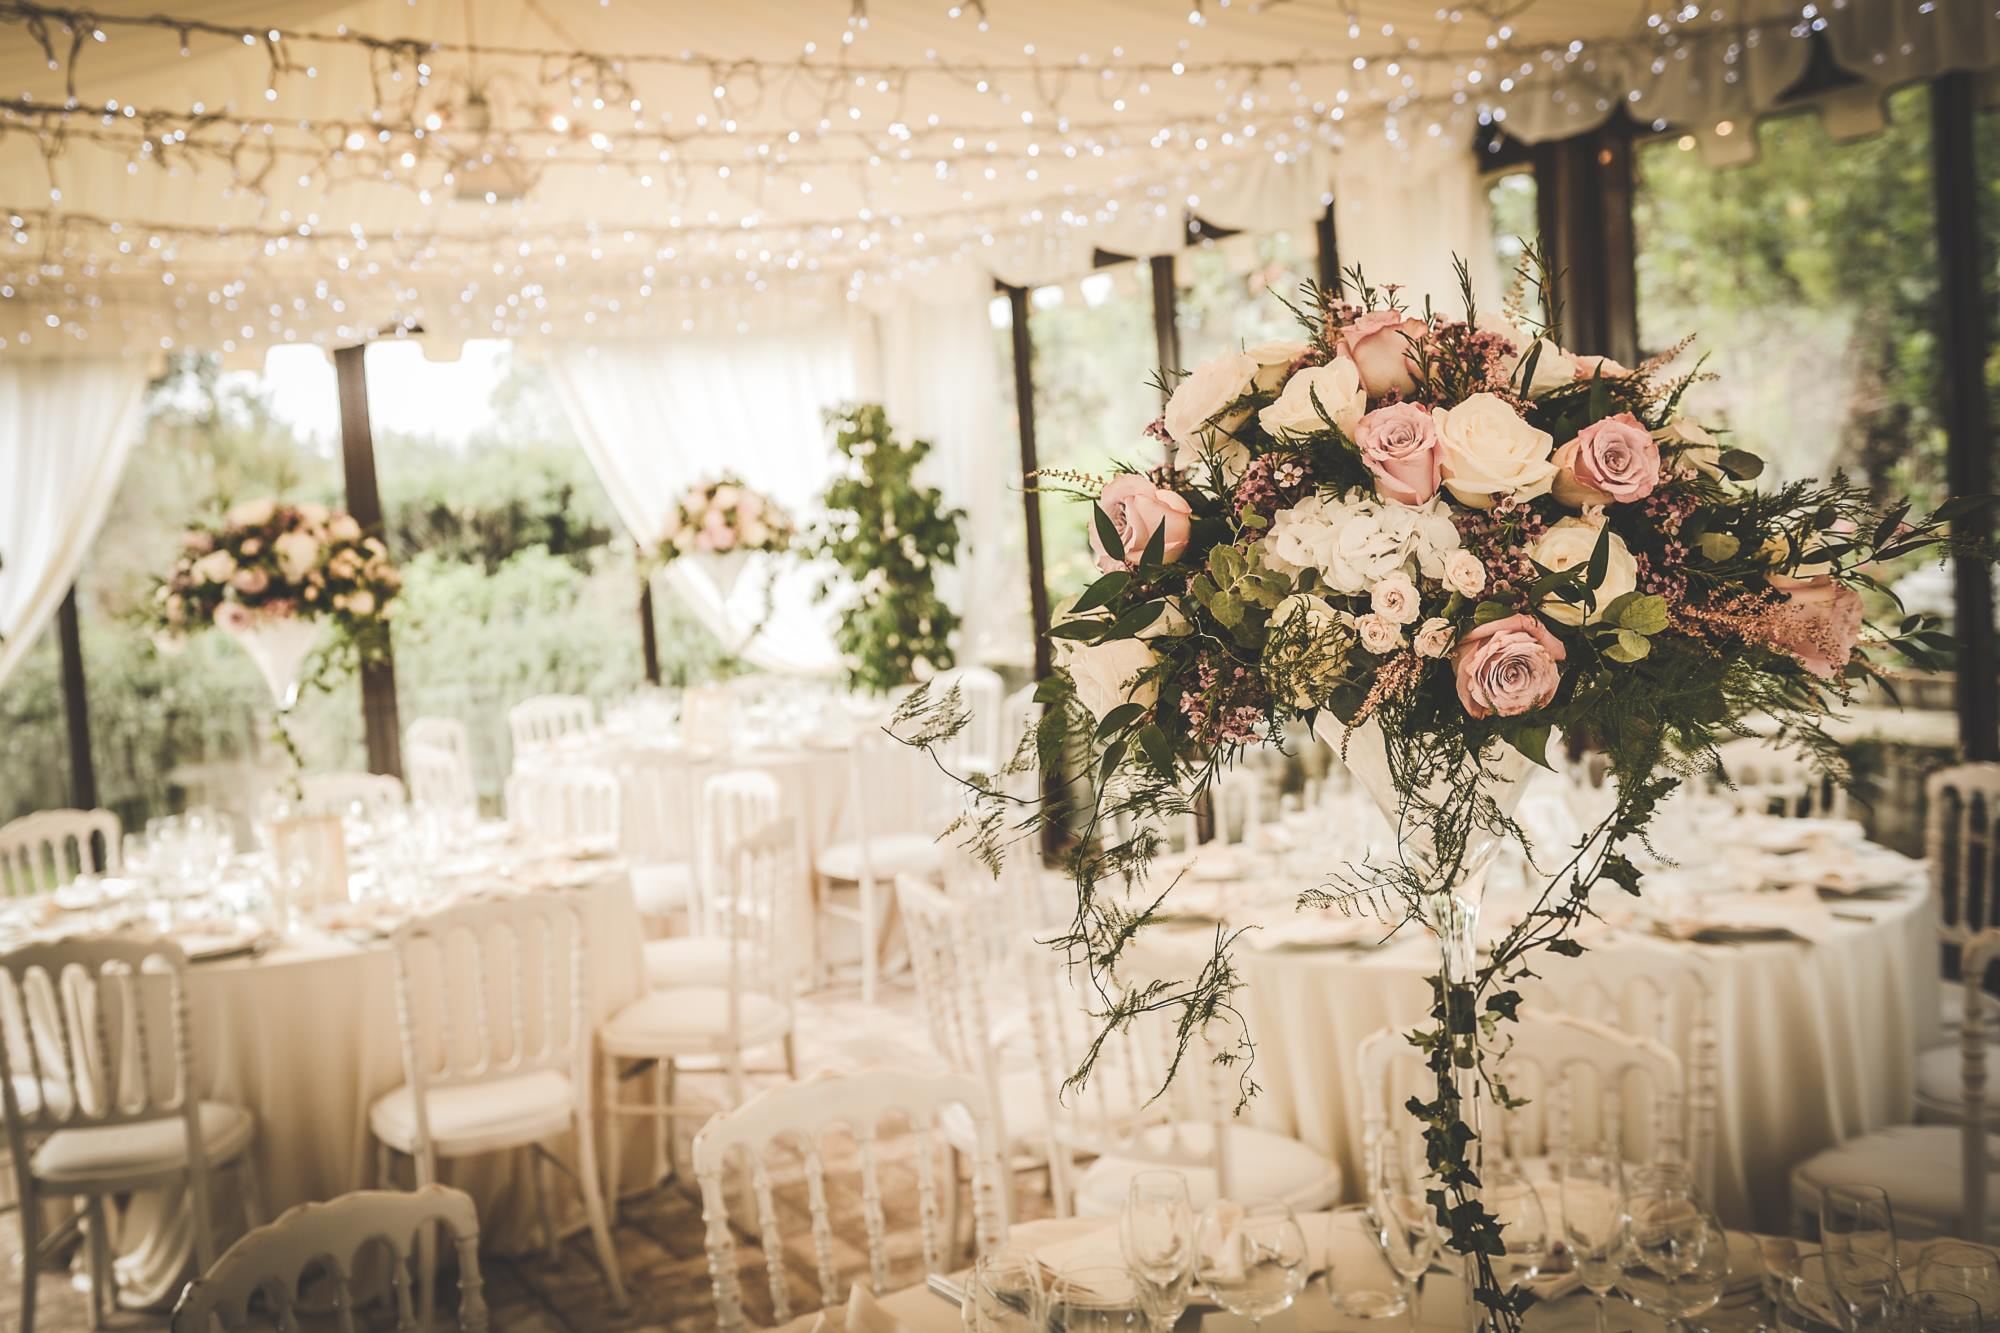 Marquee Wedding Ideas for your special day, perfect for wedding